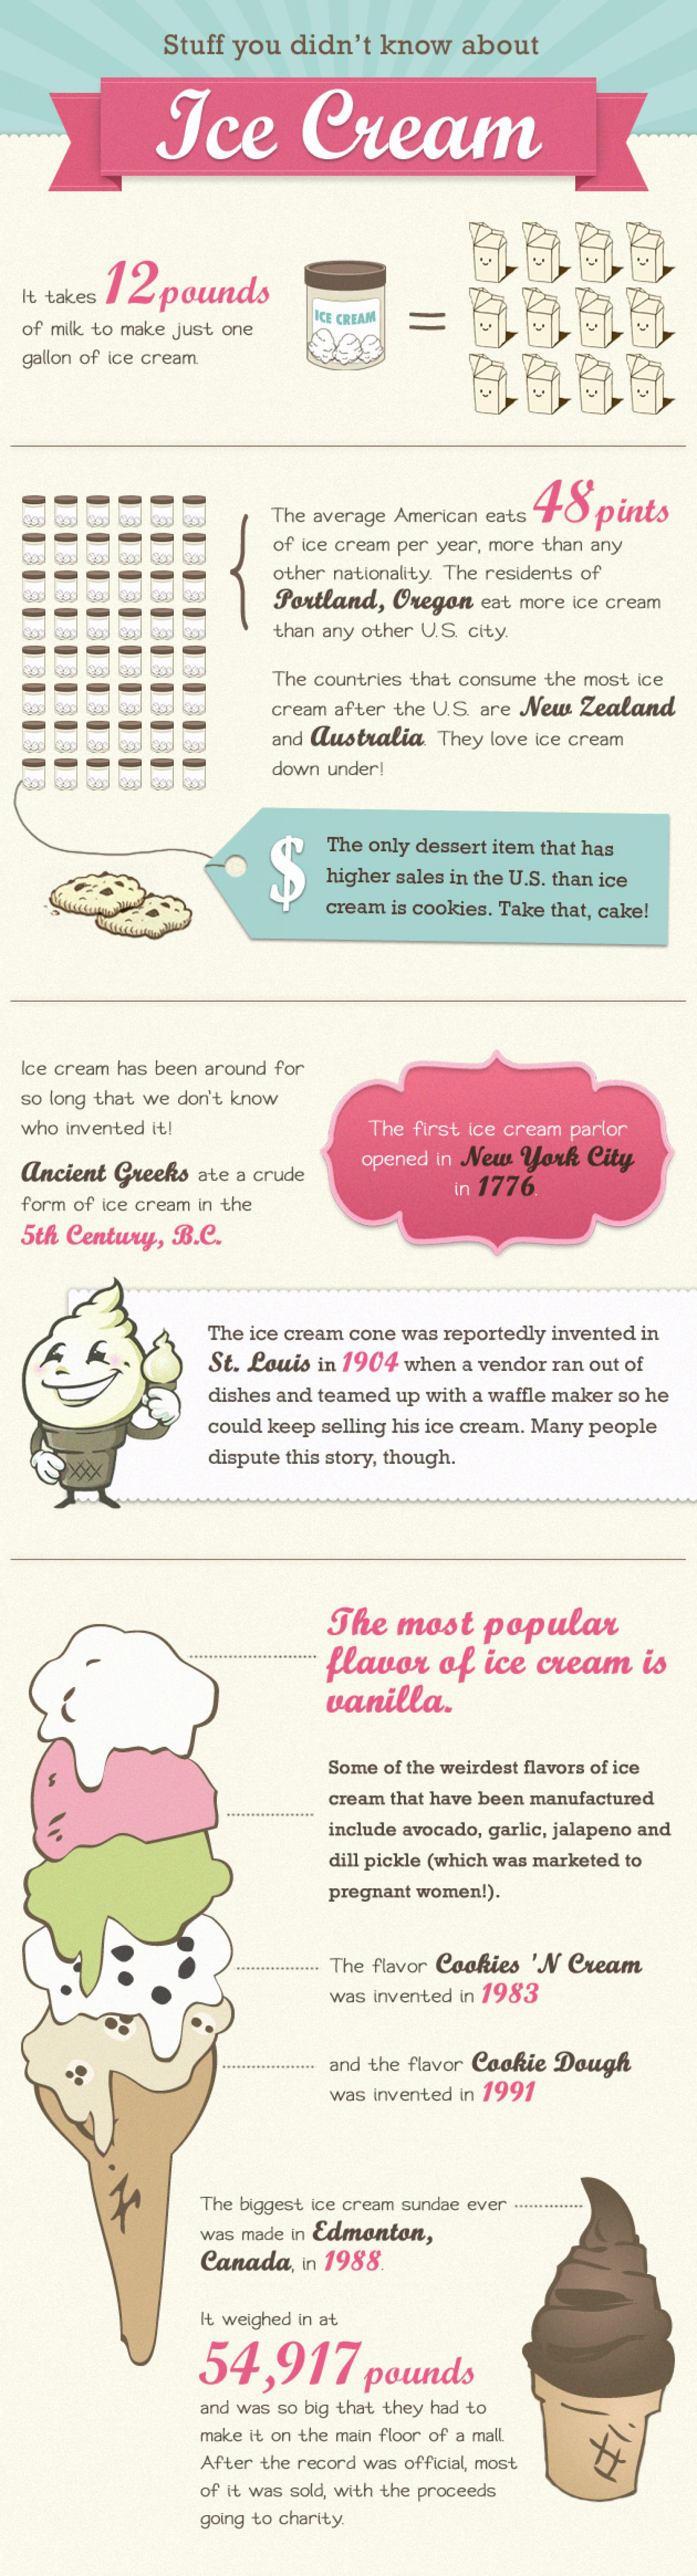 Stuff You Didn't Know About Ice Cream Infographic